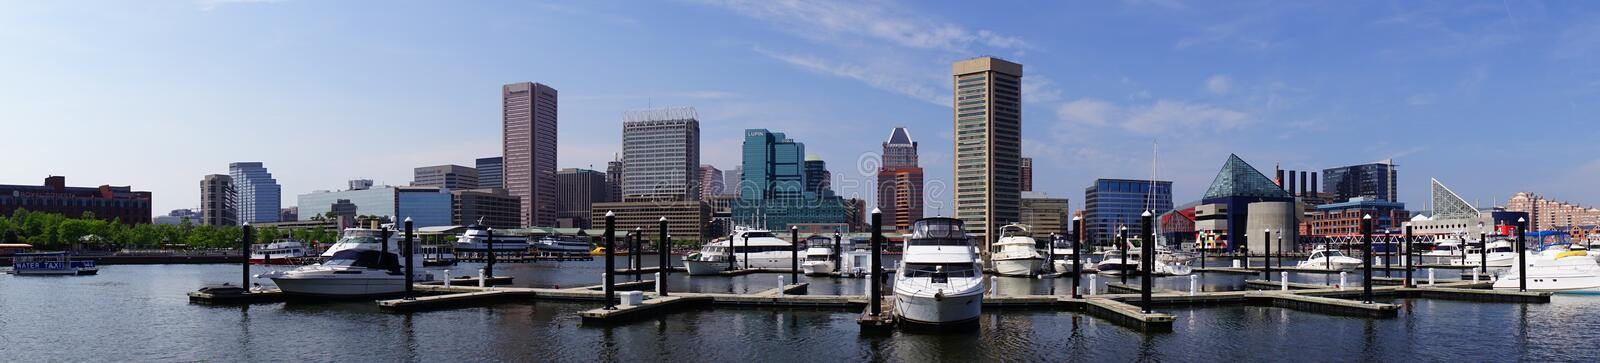 Ships in Baltimore inner harbor. Scenic area and downtown royalty free stock photography